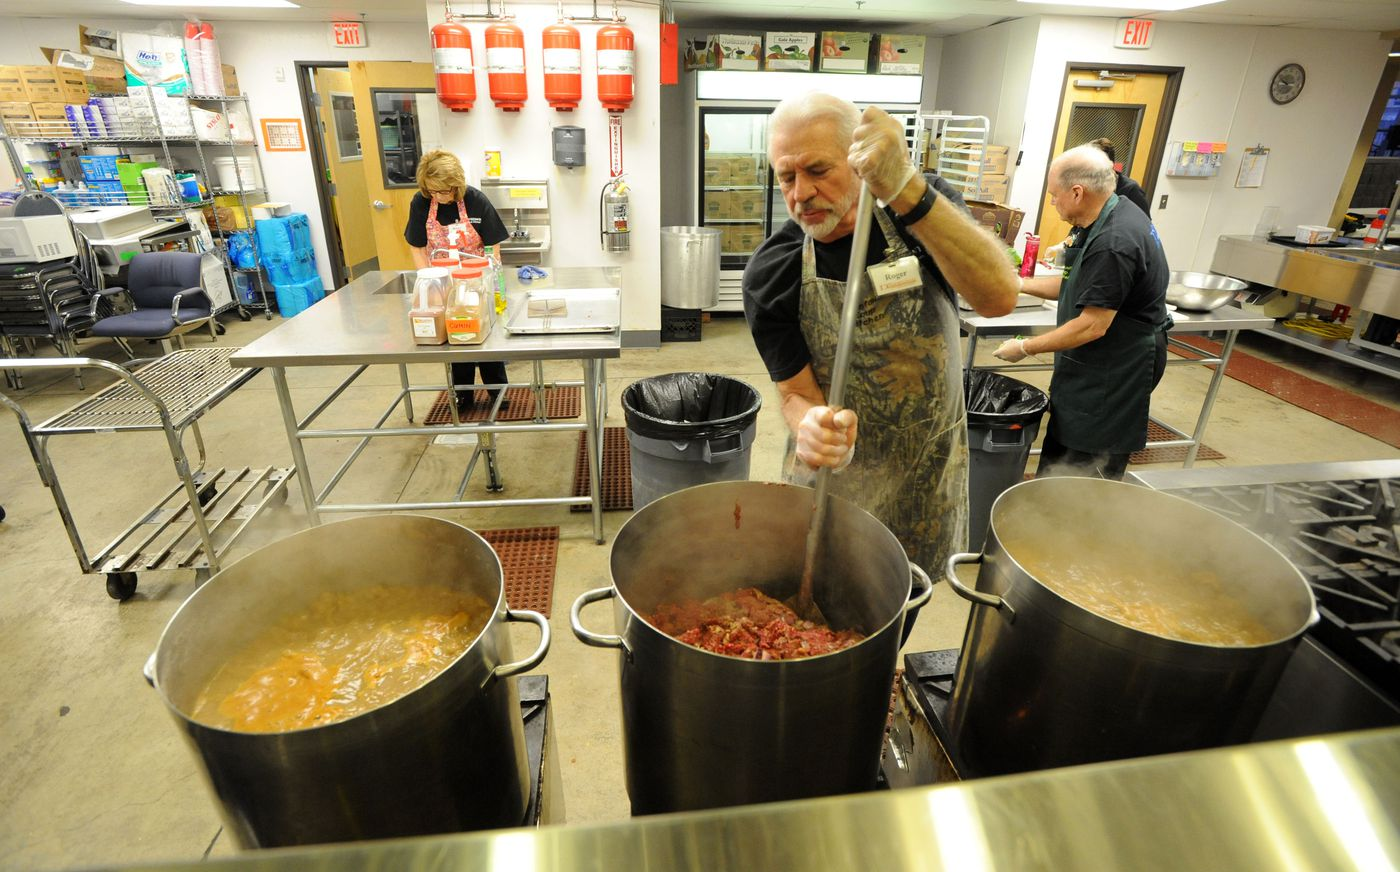 Beans simmer in the two outside pots, while Roger Morris, a 10-year volunteer with the Downtown Soup Kitchen, stirs the moose meat for Bullwinkle's Chili to serve for lunch, Thursday, Jan. 7. 20 lbs of donated road-killed moose hamburger was cooked into the chili.